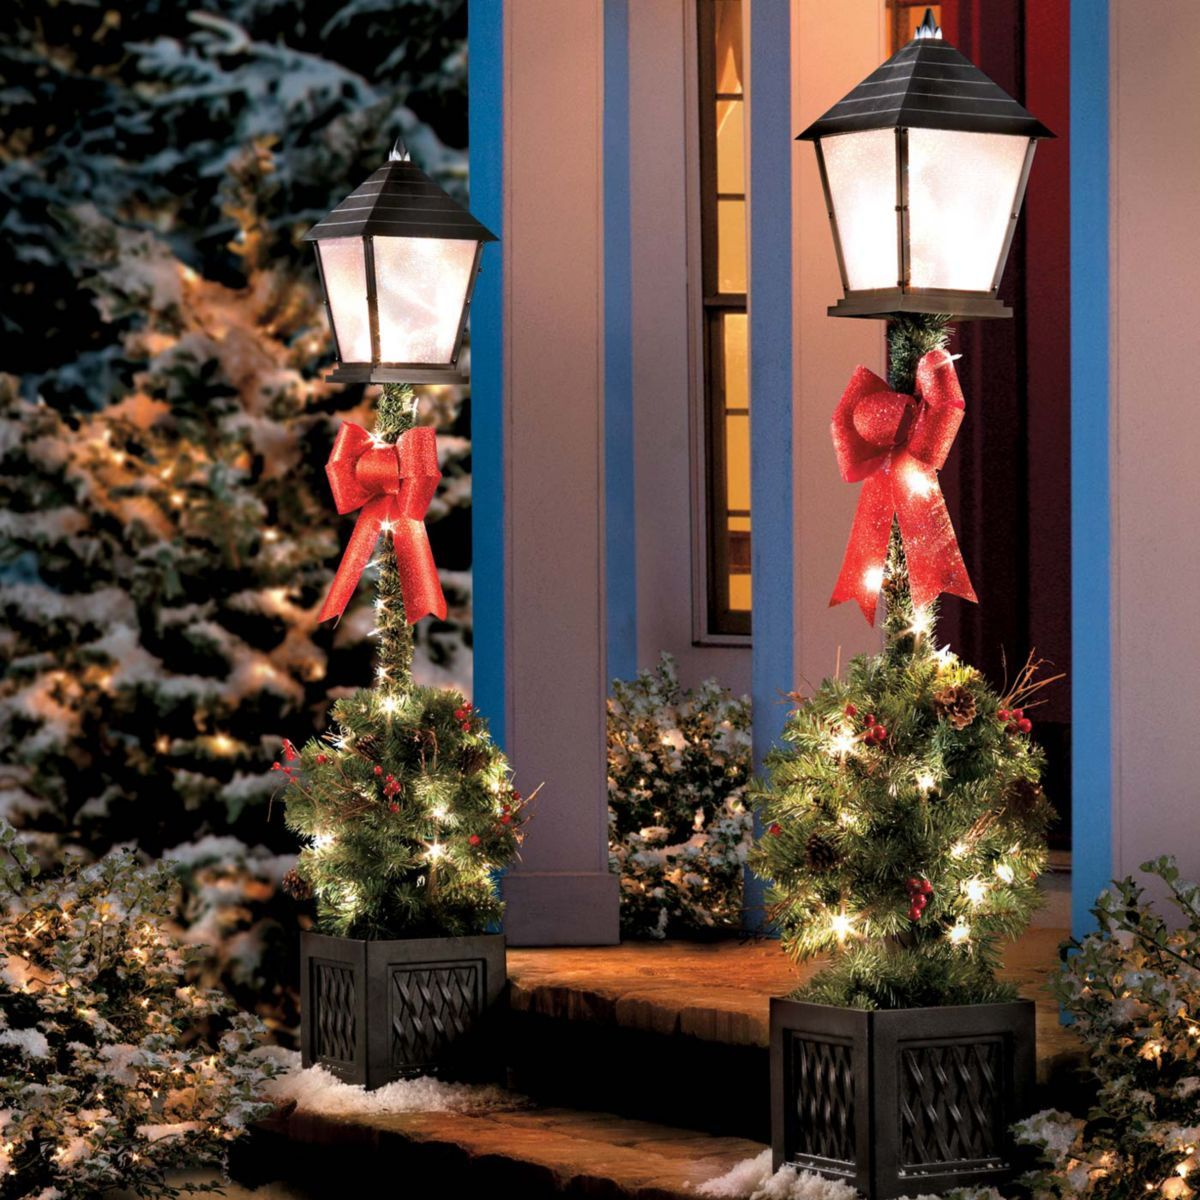 Outdoor Lamp Decoration: 4 Ft Pre-Lit Lamp Post With Greenery